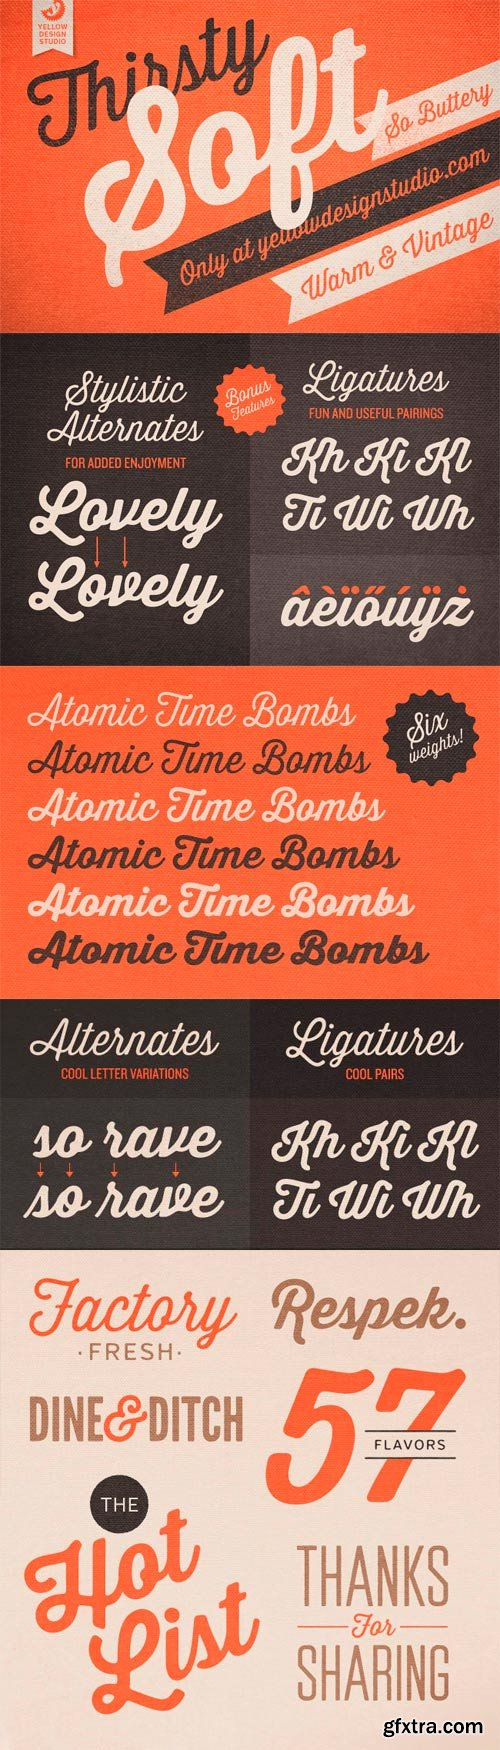 Thirsty Soft Font Family - 6 Fonts for $49